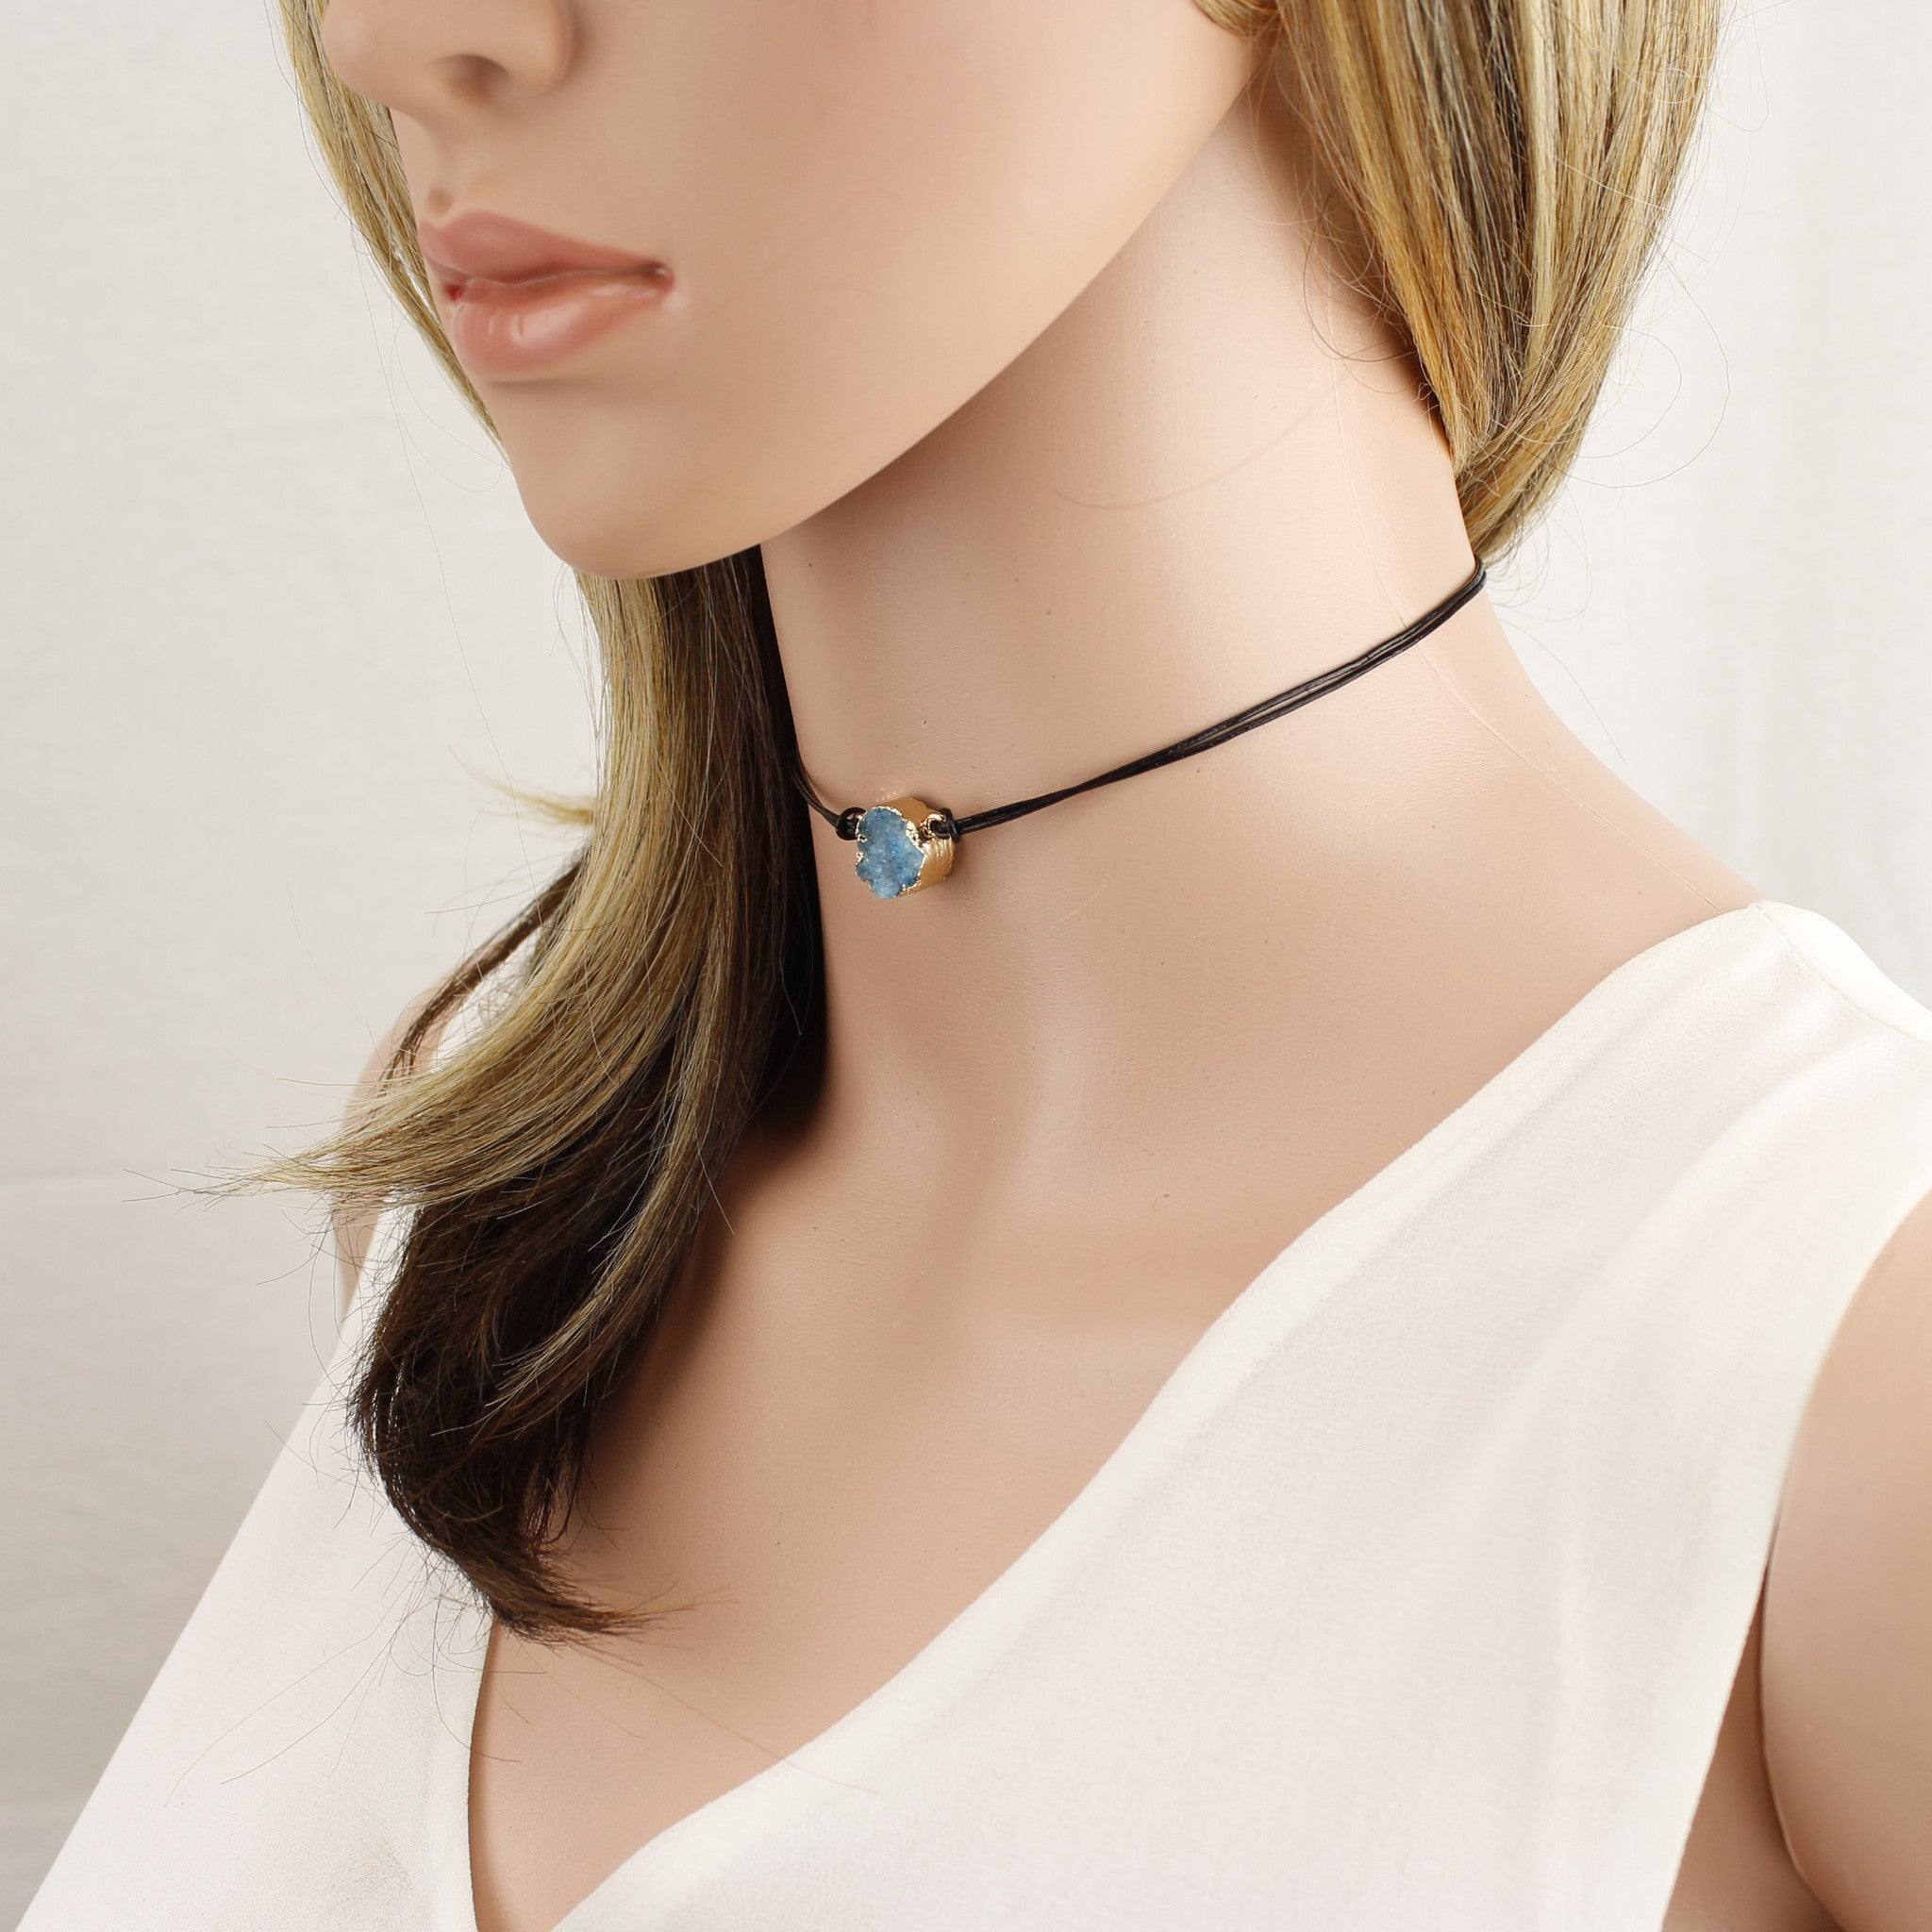 Druzy Charm Leather Cord Choker Necklace 12 inch